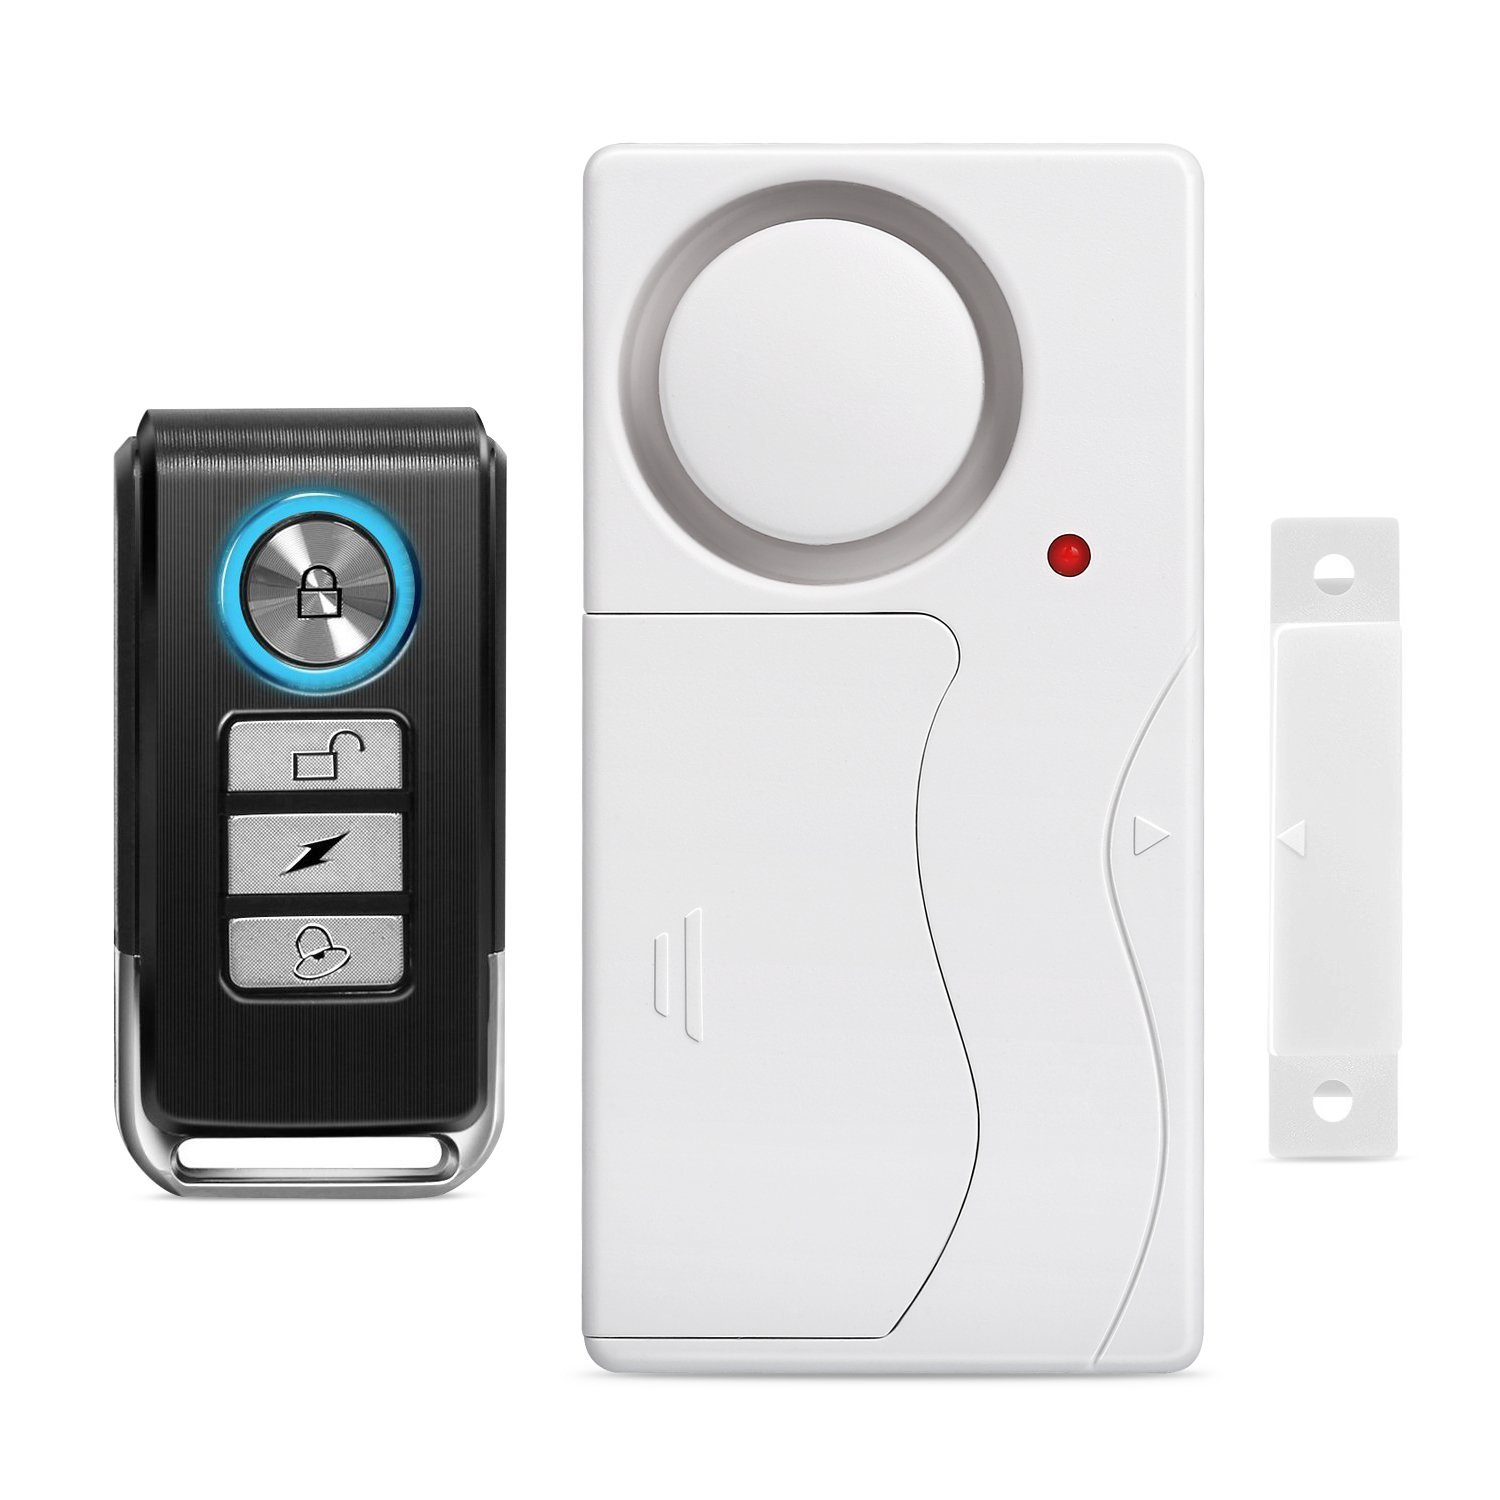 GREENCYCLE 1 Set (1 Remote,1 Alarm) Multi-function Wireless Anti-Theft Remote Control Burglar Alert Door Window Security Alarms Emergency Doorbell Magnetic Sensor Chime Alarm